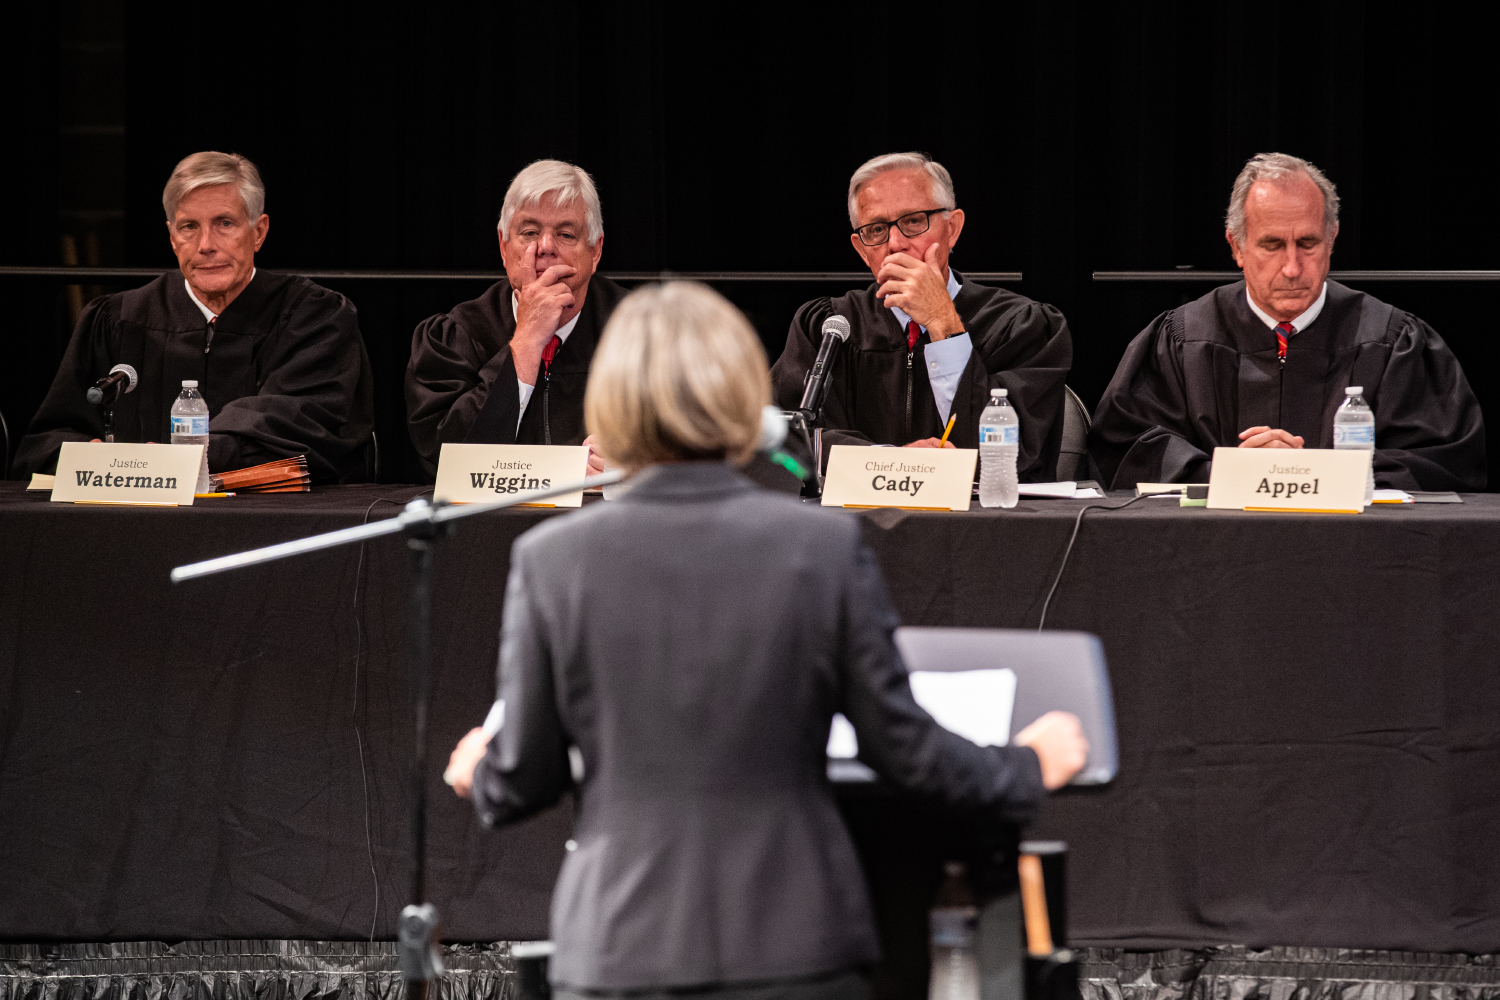 Justices listen to the argument of Melinda Nye in regards to the appeal of Lamar Wilson during a special session of the Iowa Supreme Court in Muscatine, IA on Tuesday, September 10, 2019.